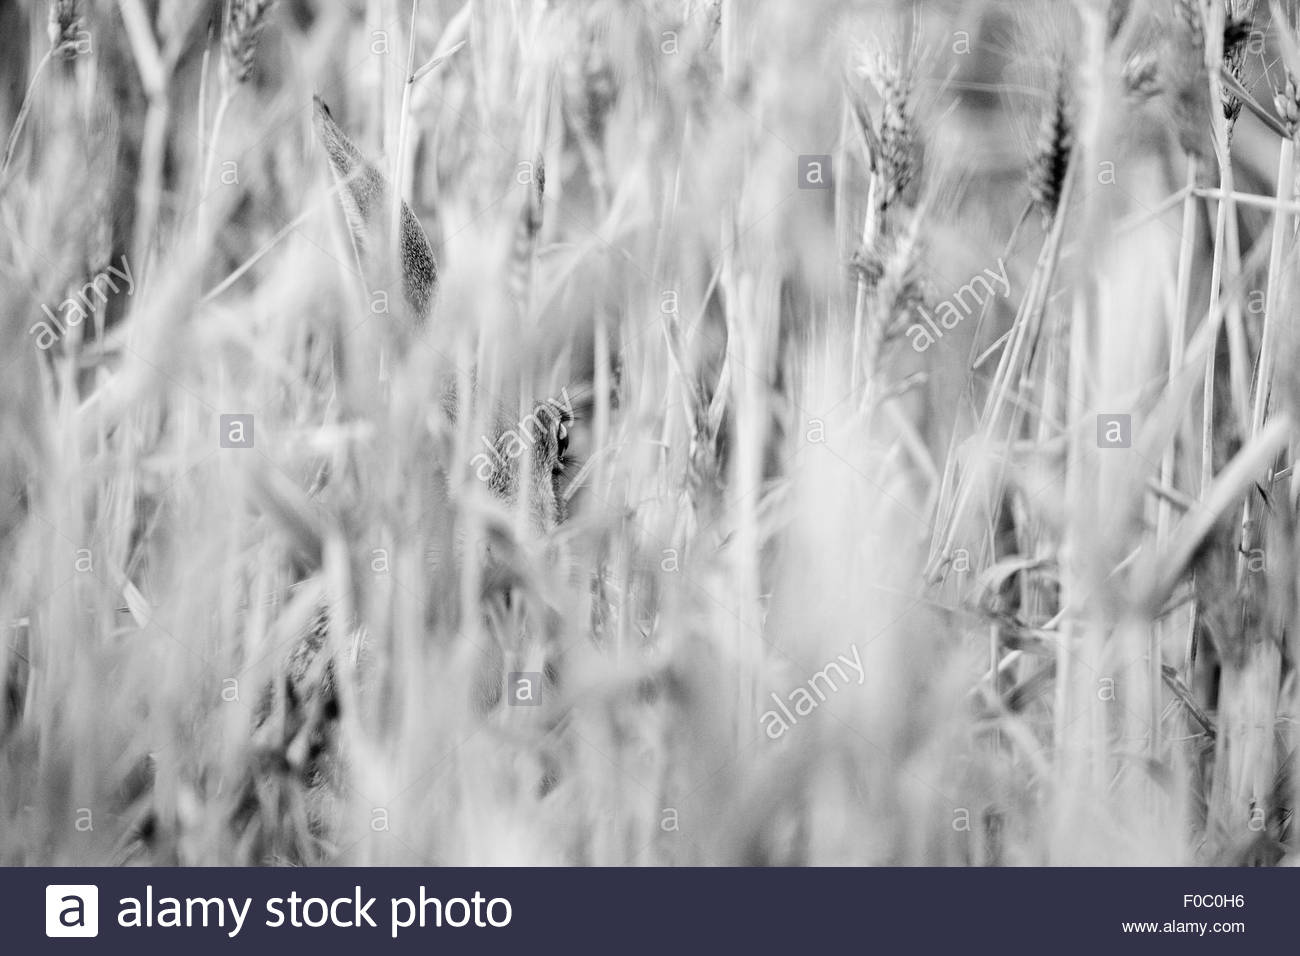 A Brown Hare in a field of wheat. - Stock Image